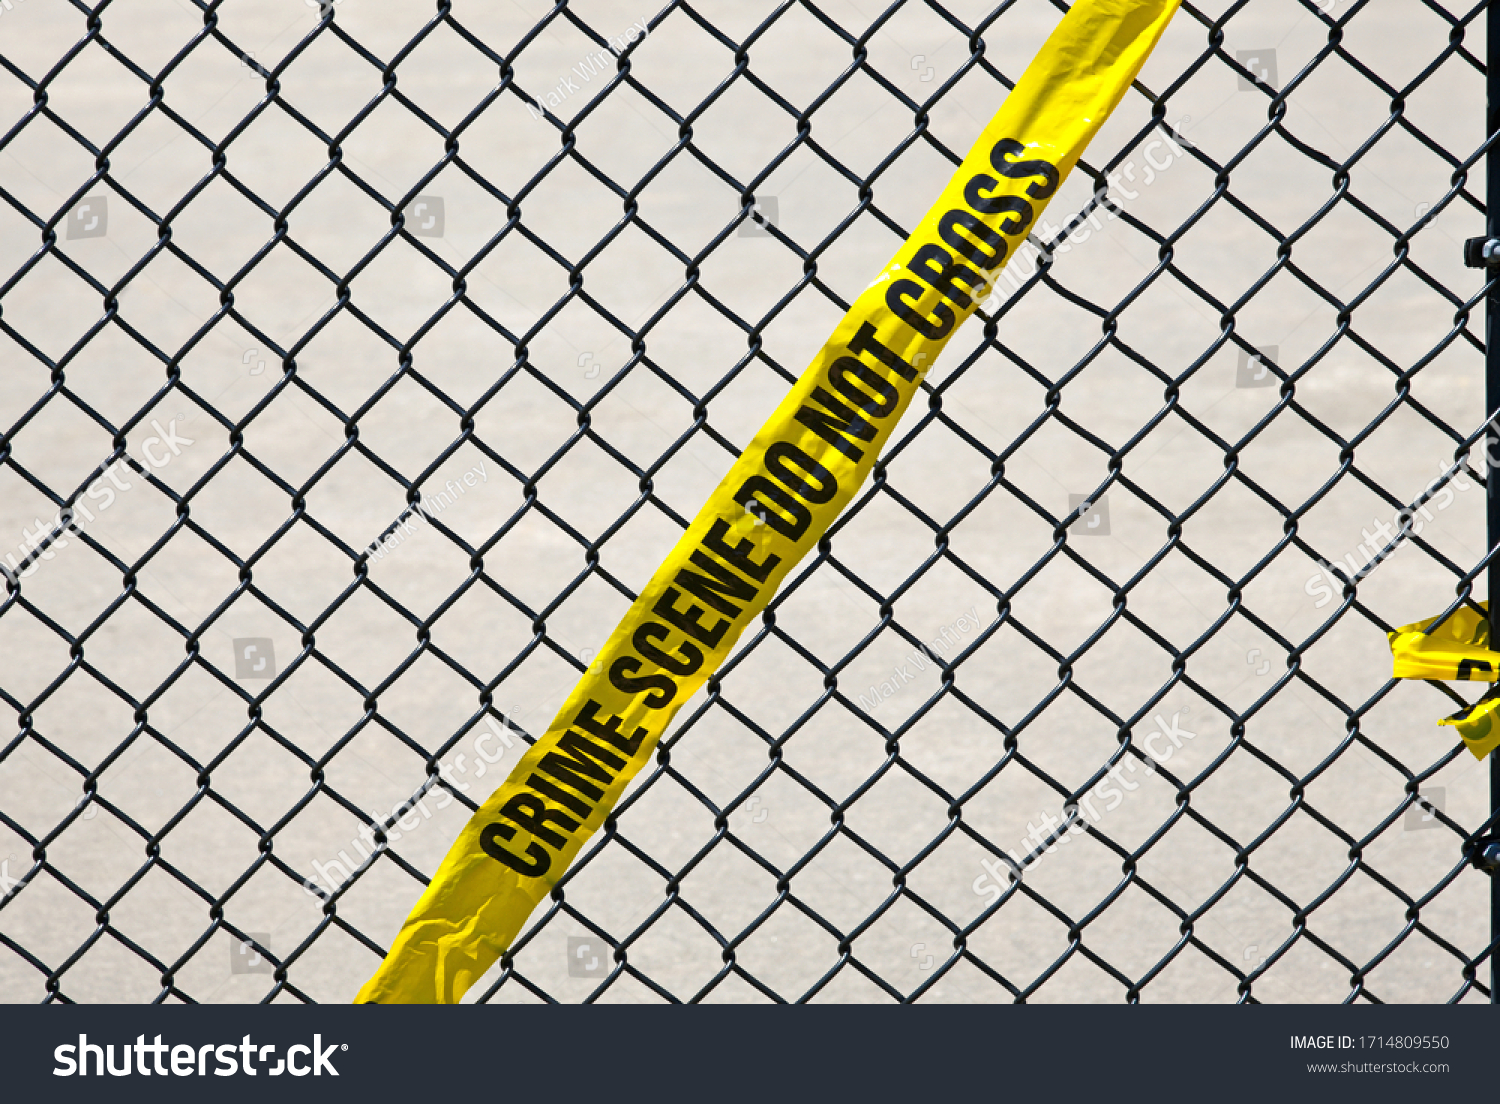 stock-photo-yellow-crime-tape-hanging-on